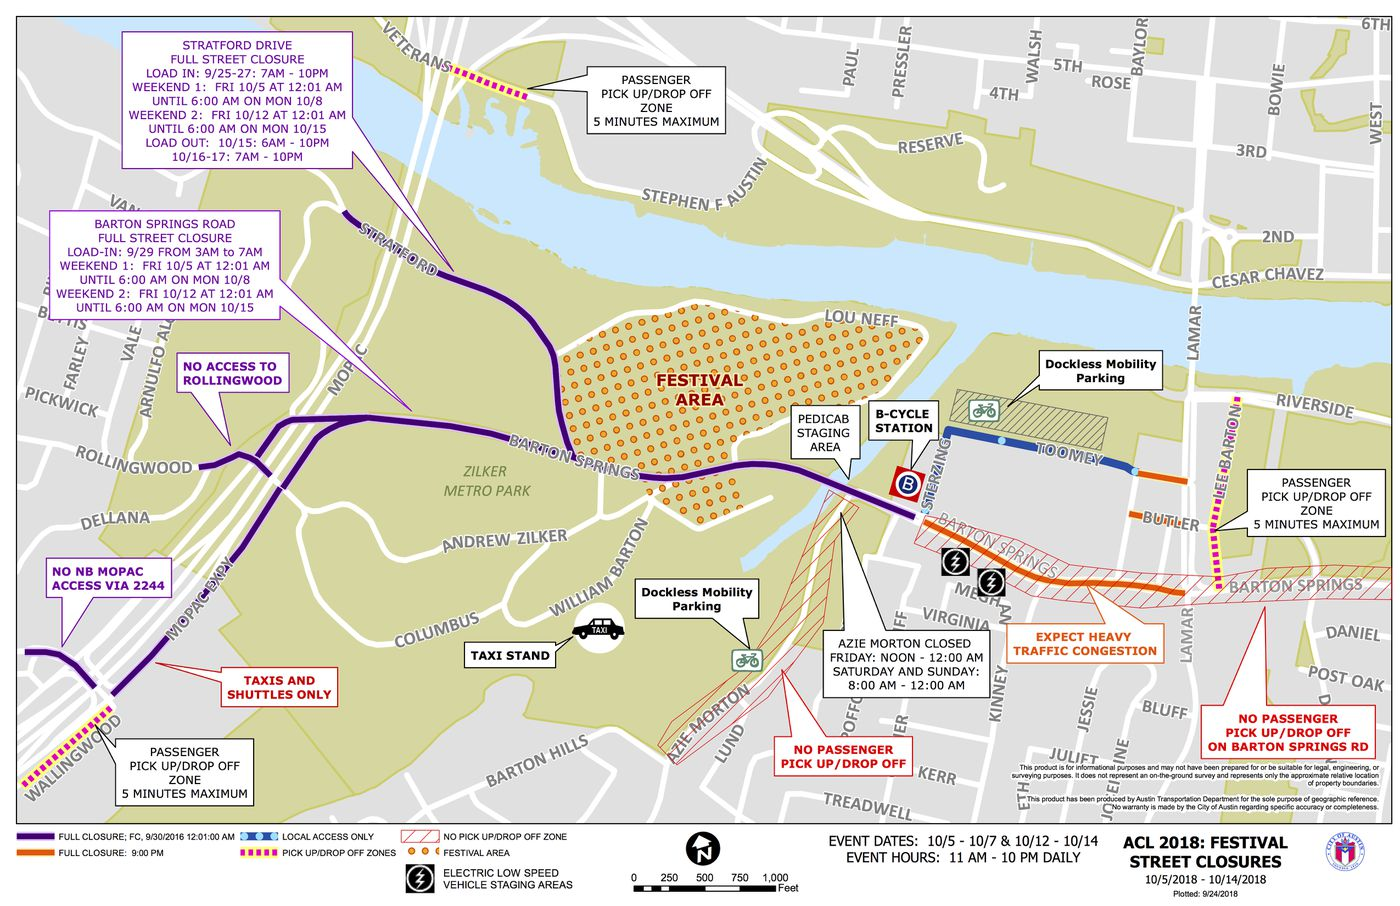 ACL Fest 2018: How to get there (or avoid it) - Curbed Austin Zilker Park Austin Texas Map on zilker park austin address, parks in austin tx map, austin city parks map, austin city limits map, texas bluebonnet trail map, barton springs austin map, zilker park trail map, sixth street austin map, pease park austin texas map, zilker park austin picnic area,